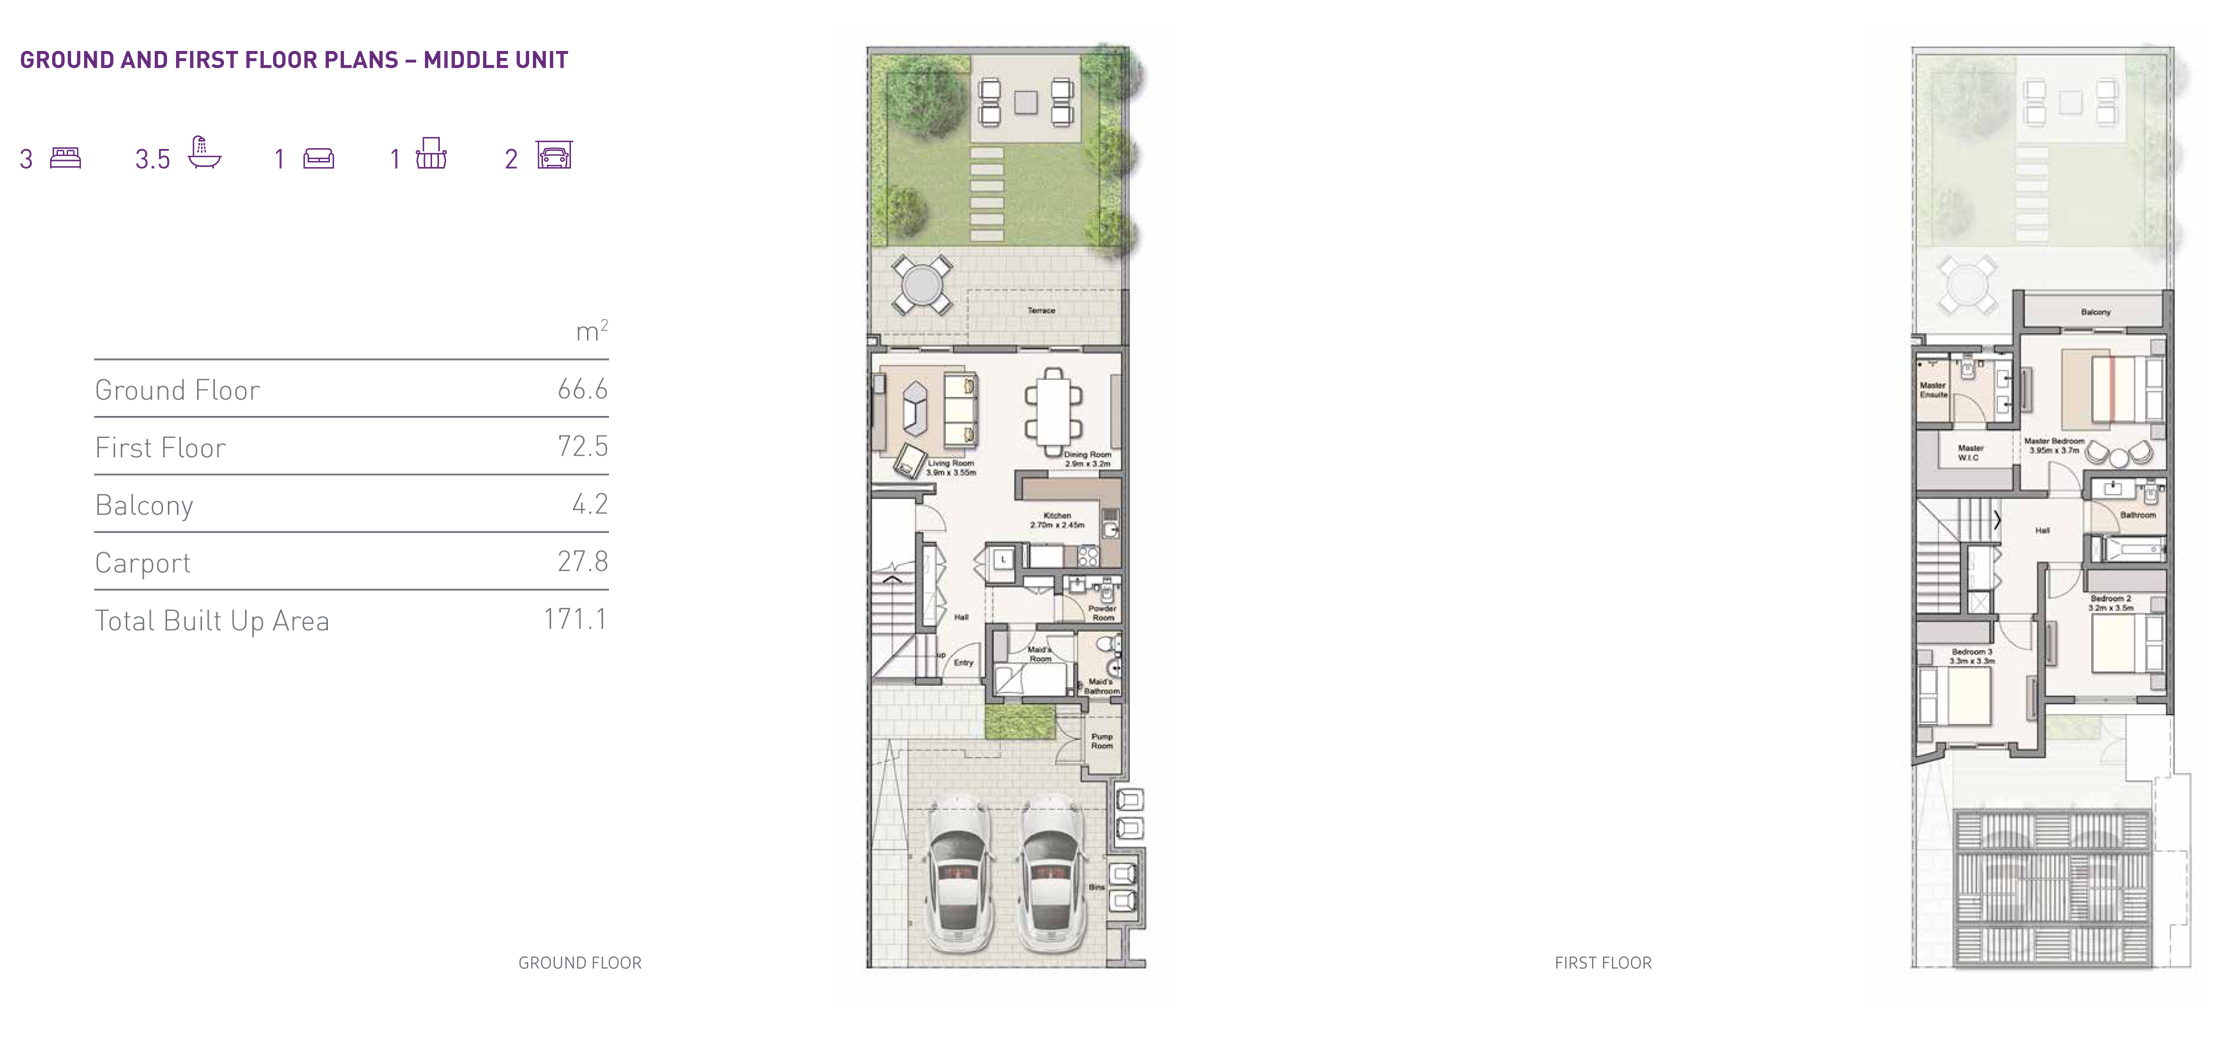 3 Bedroom Ground and First Floor Plans with 171 Sq Mtr